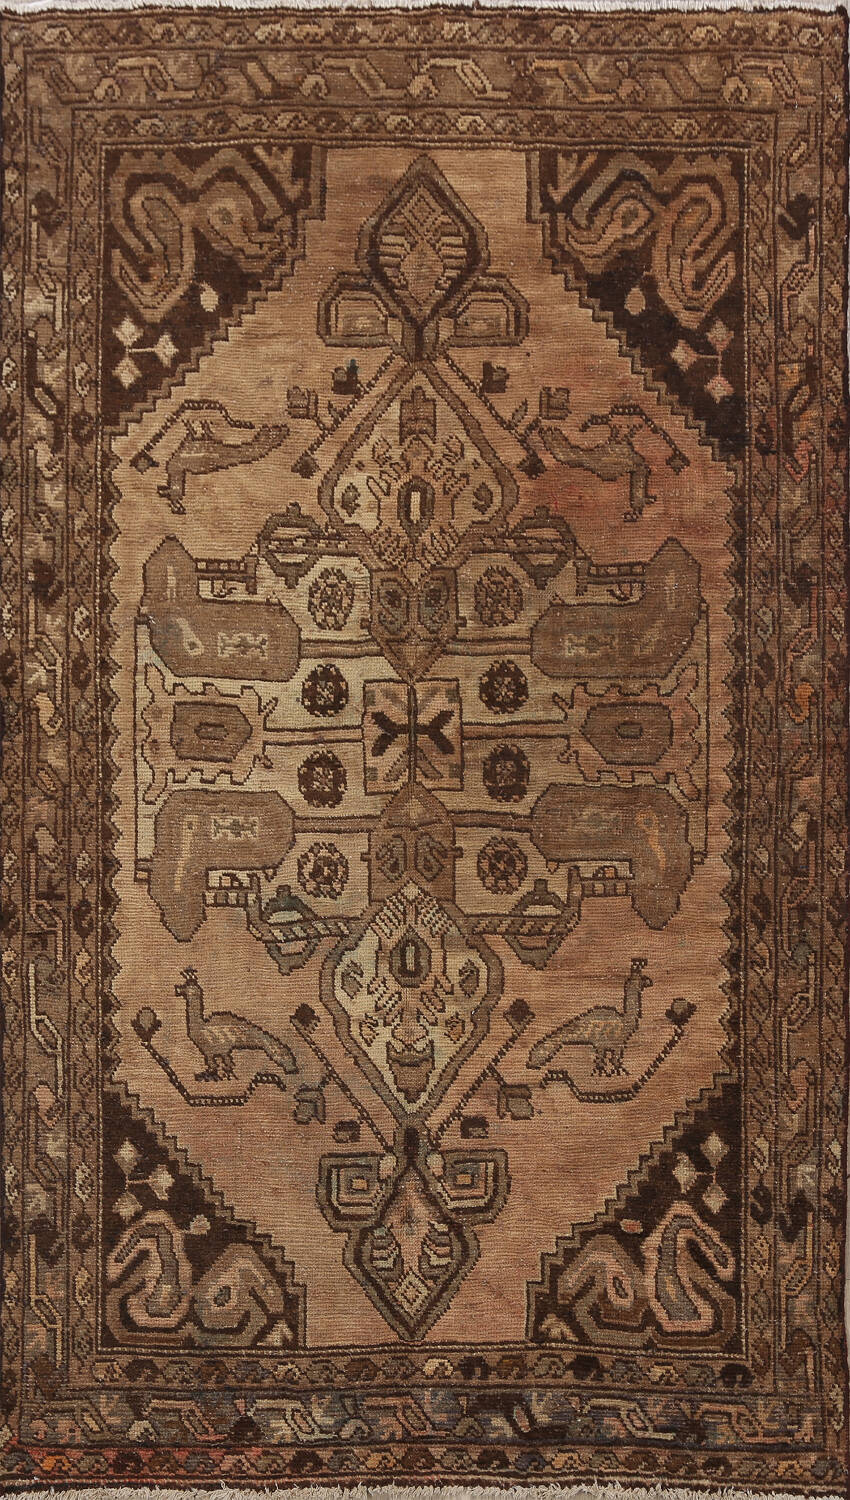 Antique Animal Pictorial Malayer Persian Area Rug 4x7 image 1